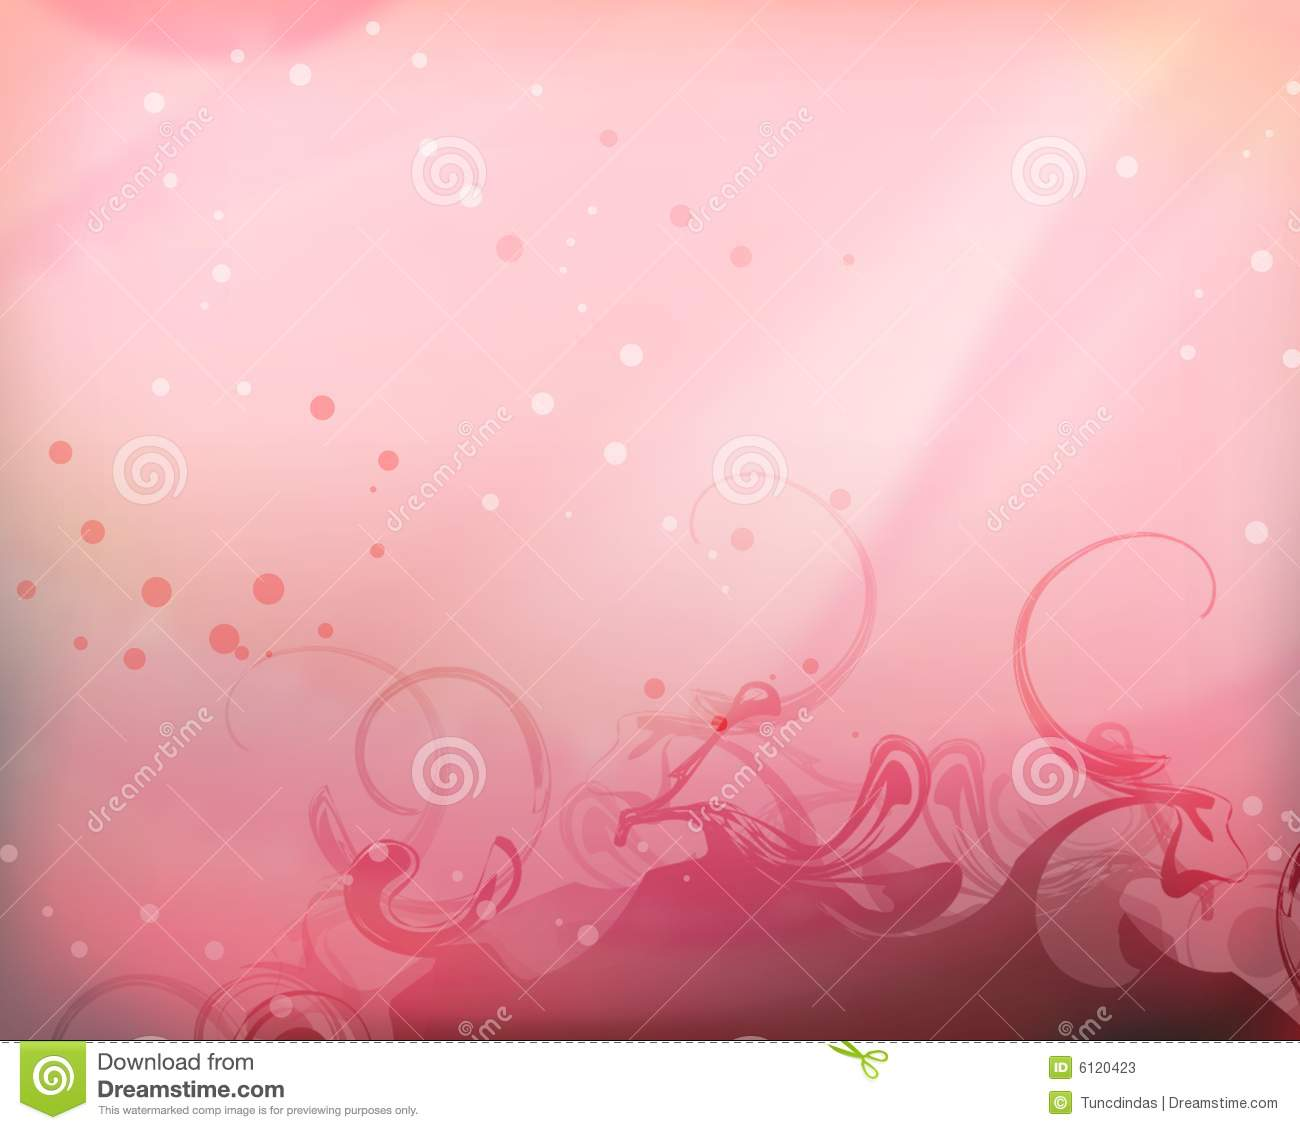 Romantic Background 01